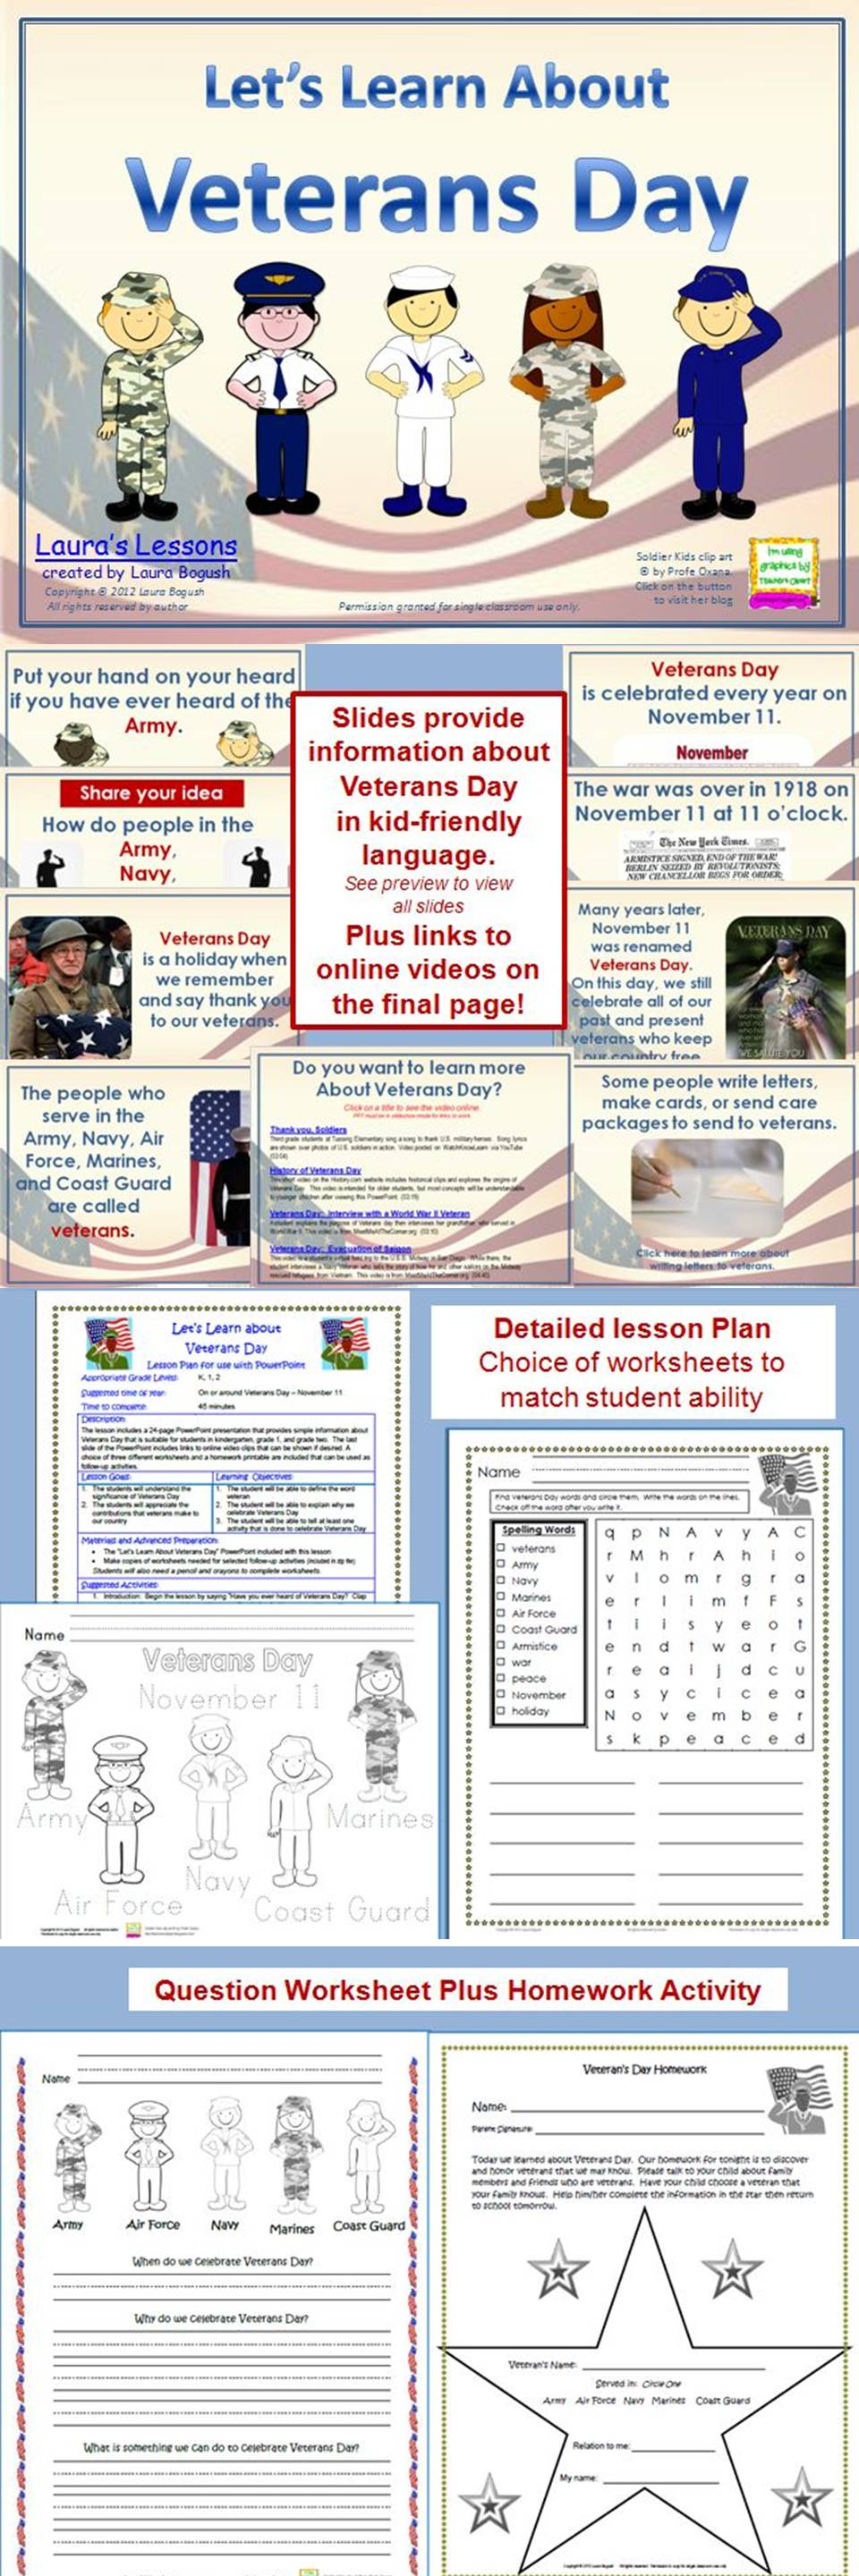 Veterans Day Powerpoint Lesson W Worksheets Homework Veterans Day Activities Powerpoint Lesson Veterans Day [ 2880 x 960 Pixel ]